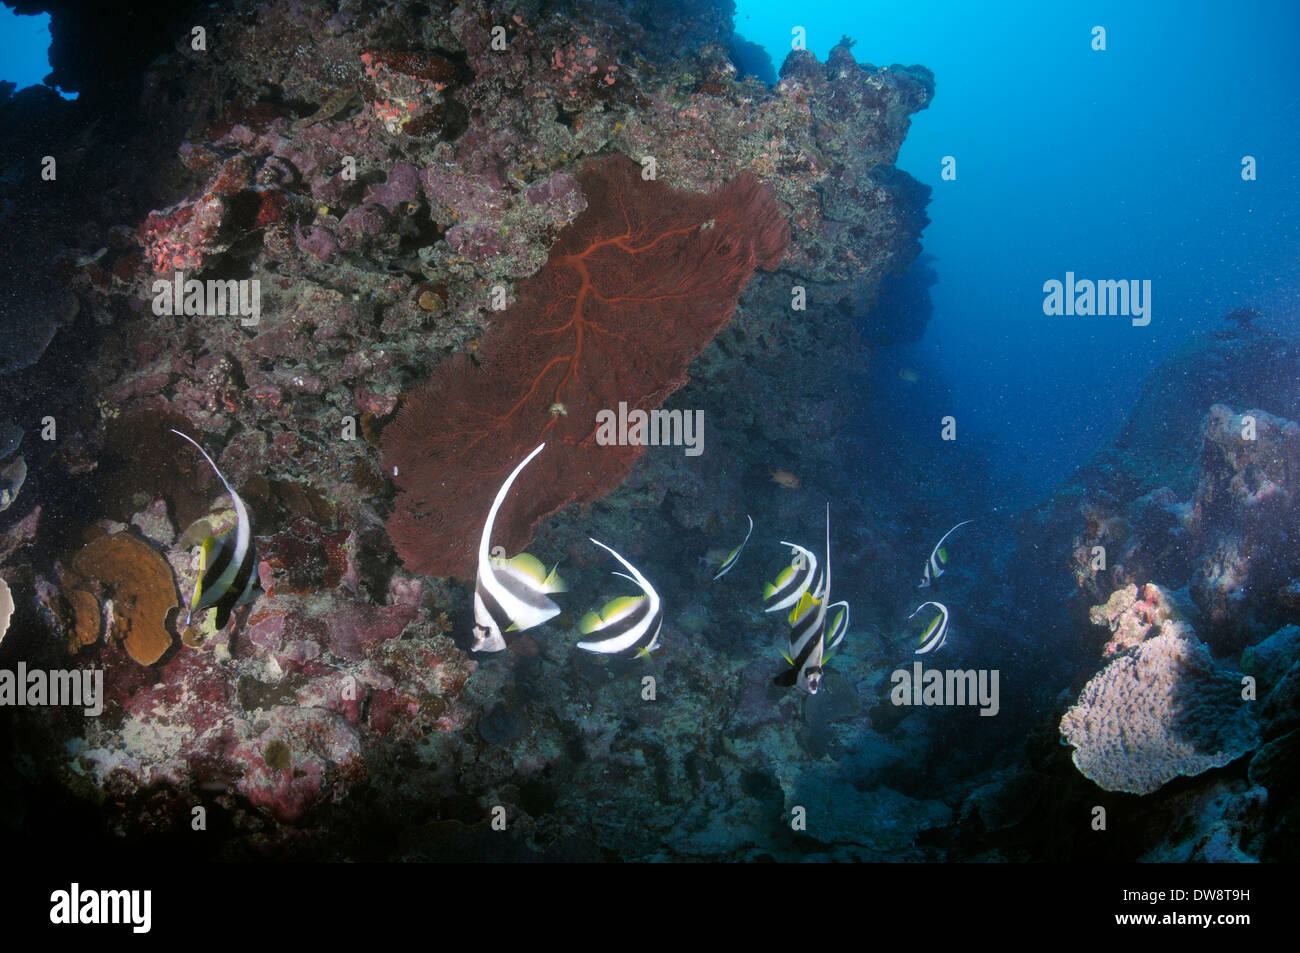 Longfin bannerfish, Heniochus acuminatus, swim around a diverse coral reef, Fugavea Pass, Wallis Island, Wallis and Futuna - Stock Image